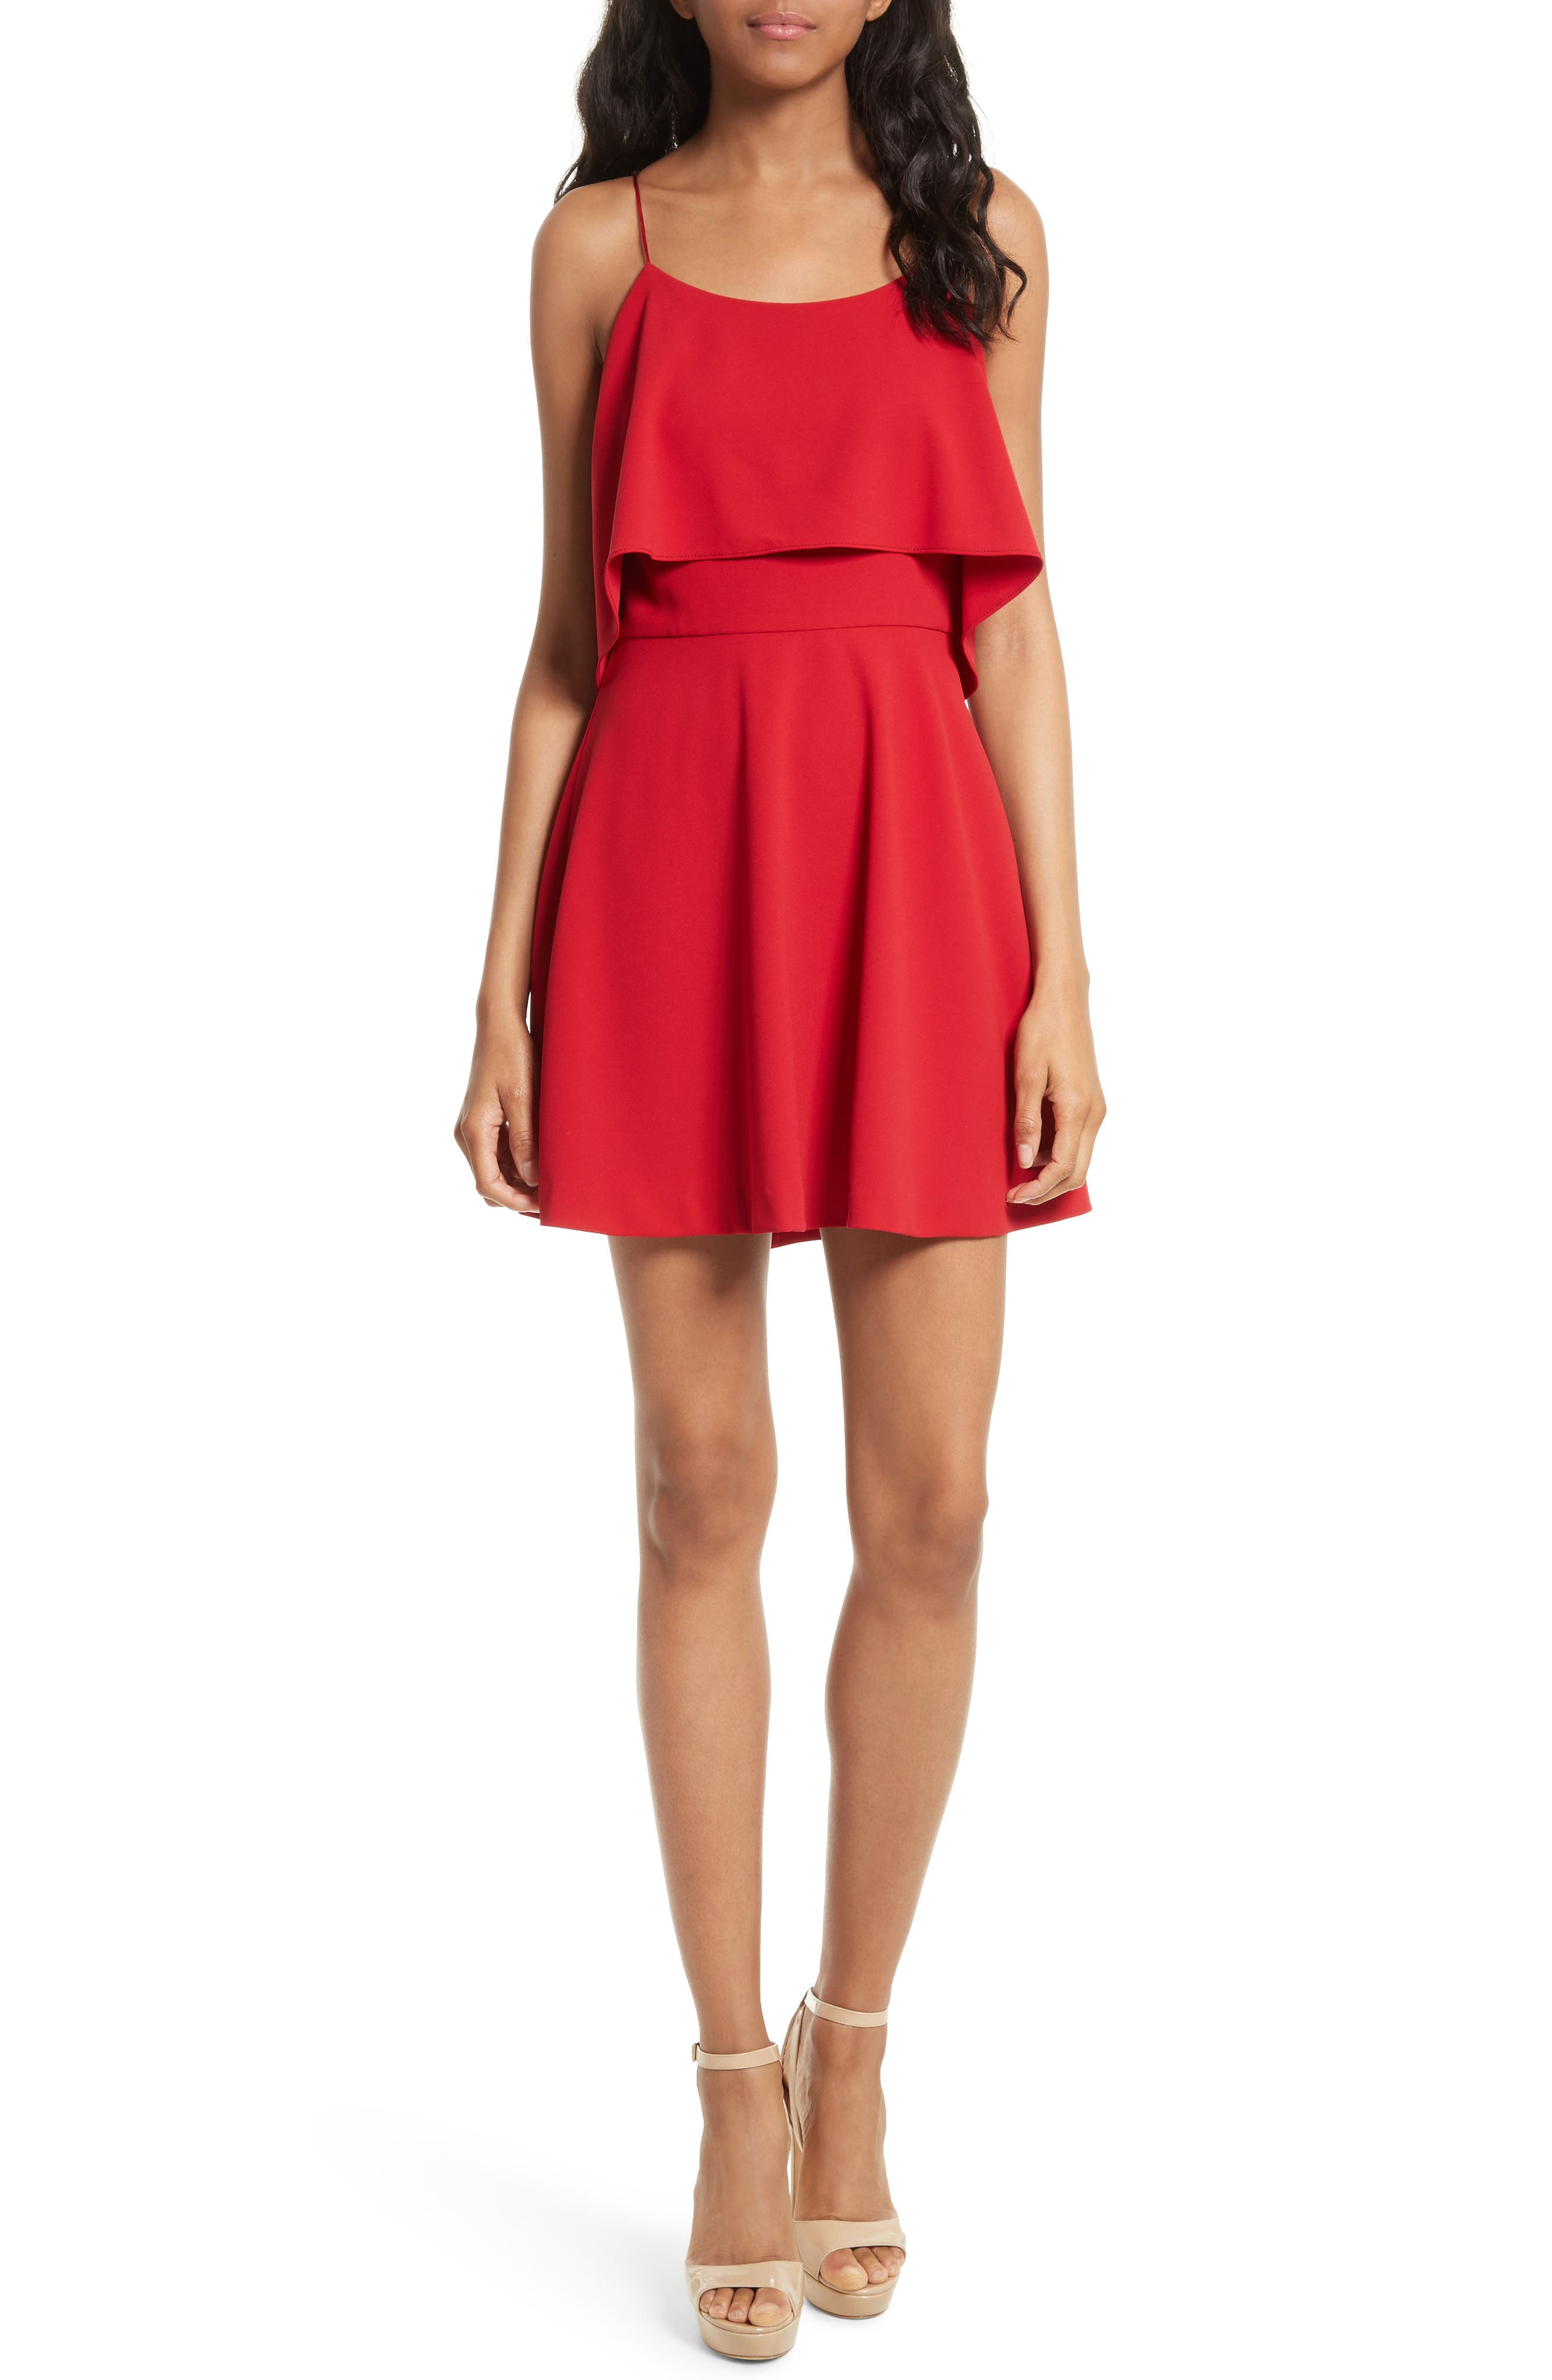 Kipp Layered Ruffle Short Dress,                             Main thumbnail 1, color,                             Deep Ruby